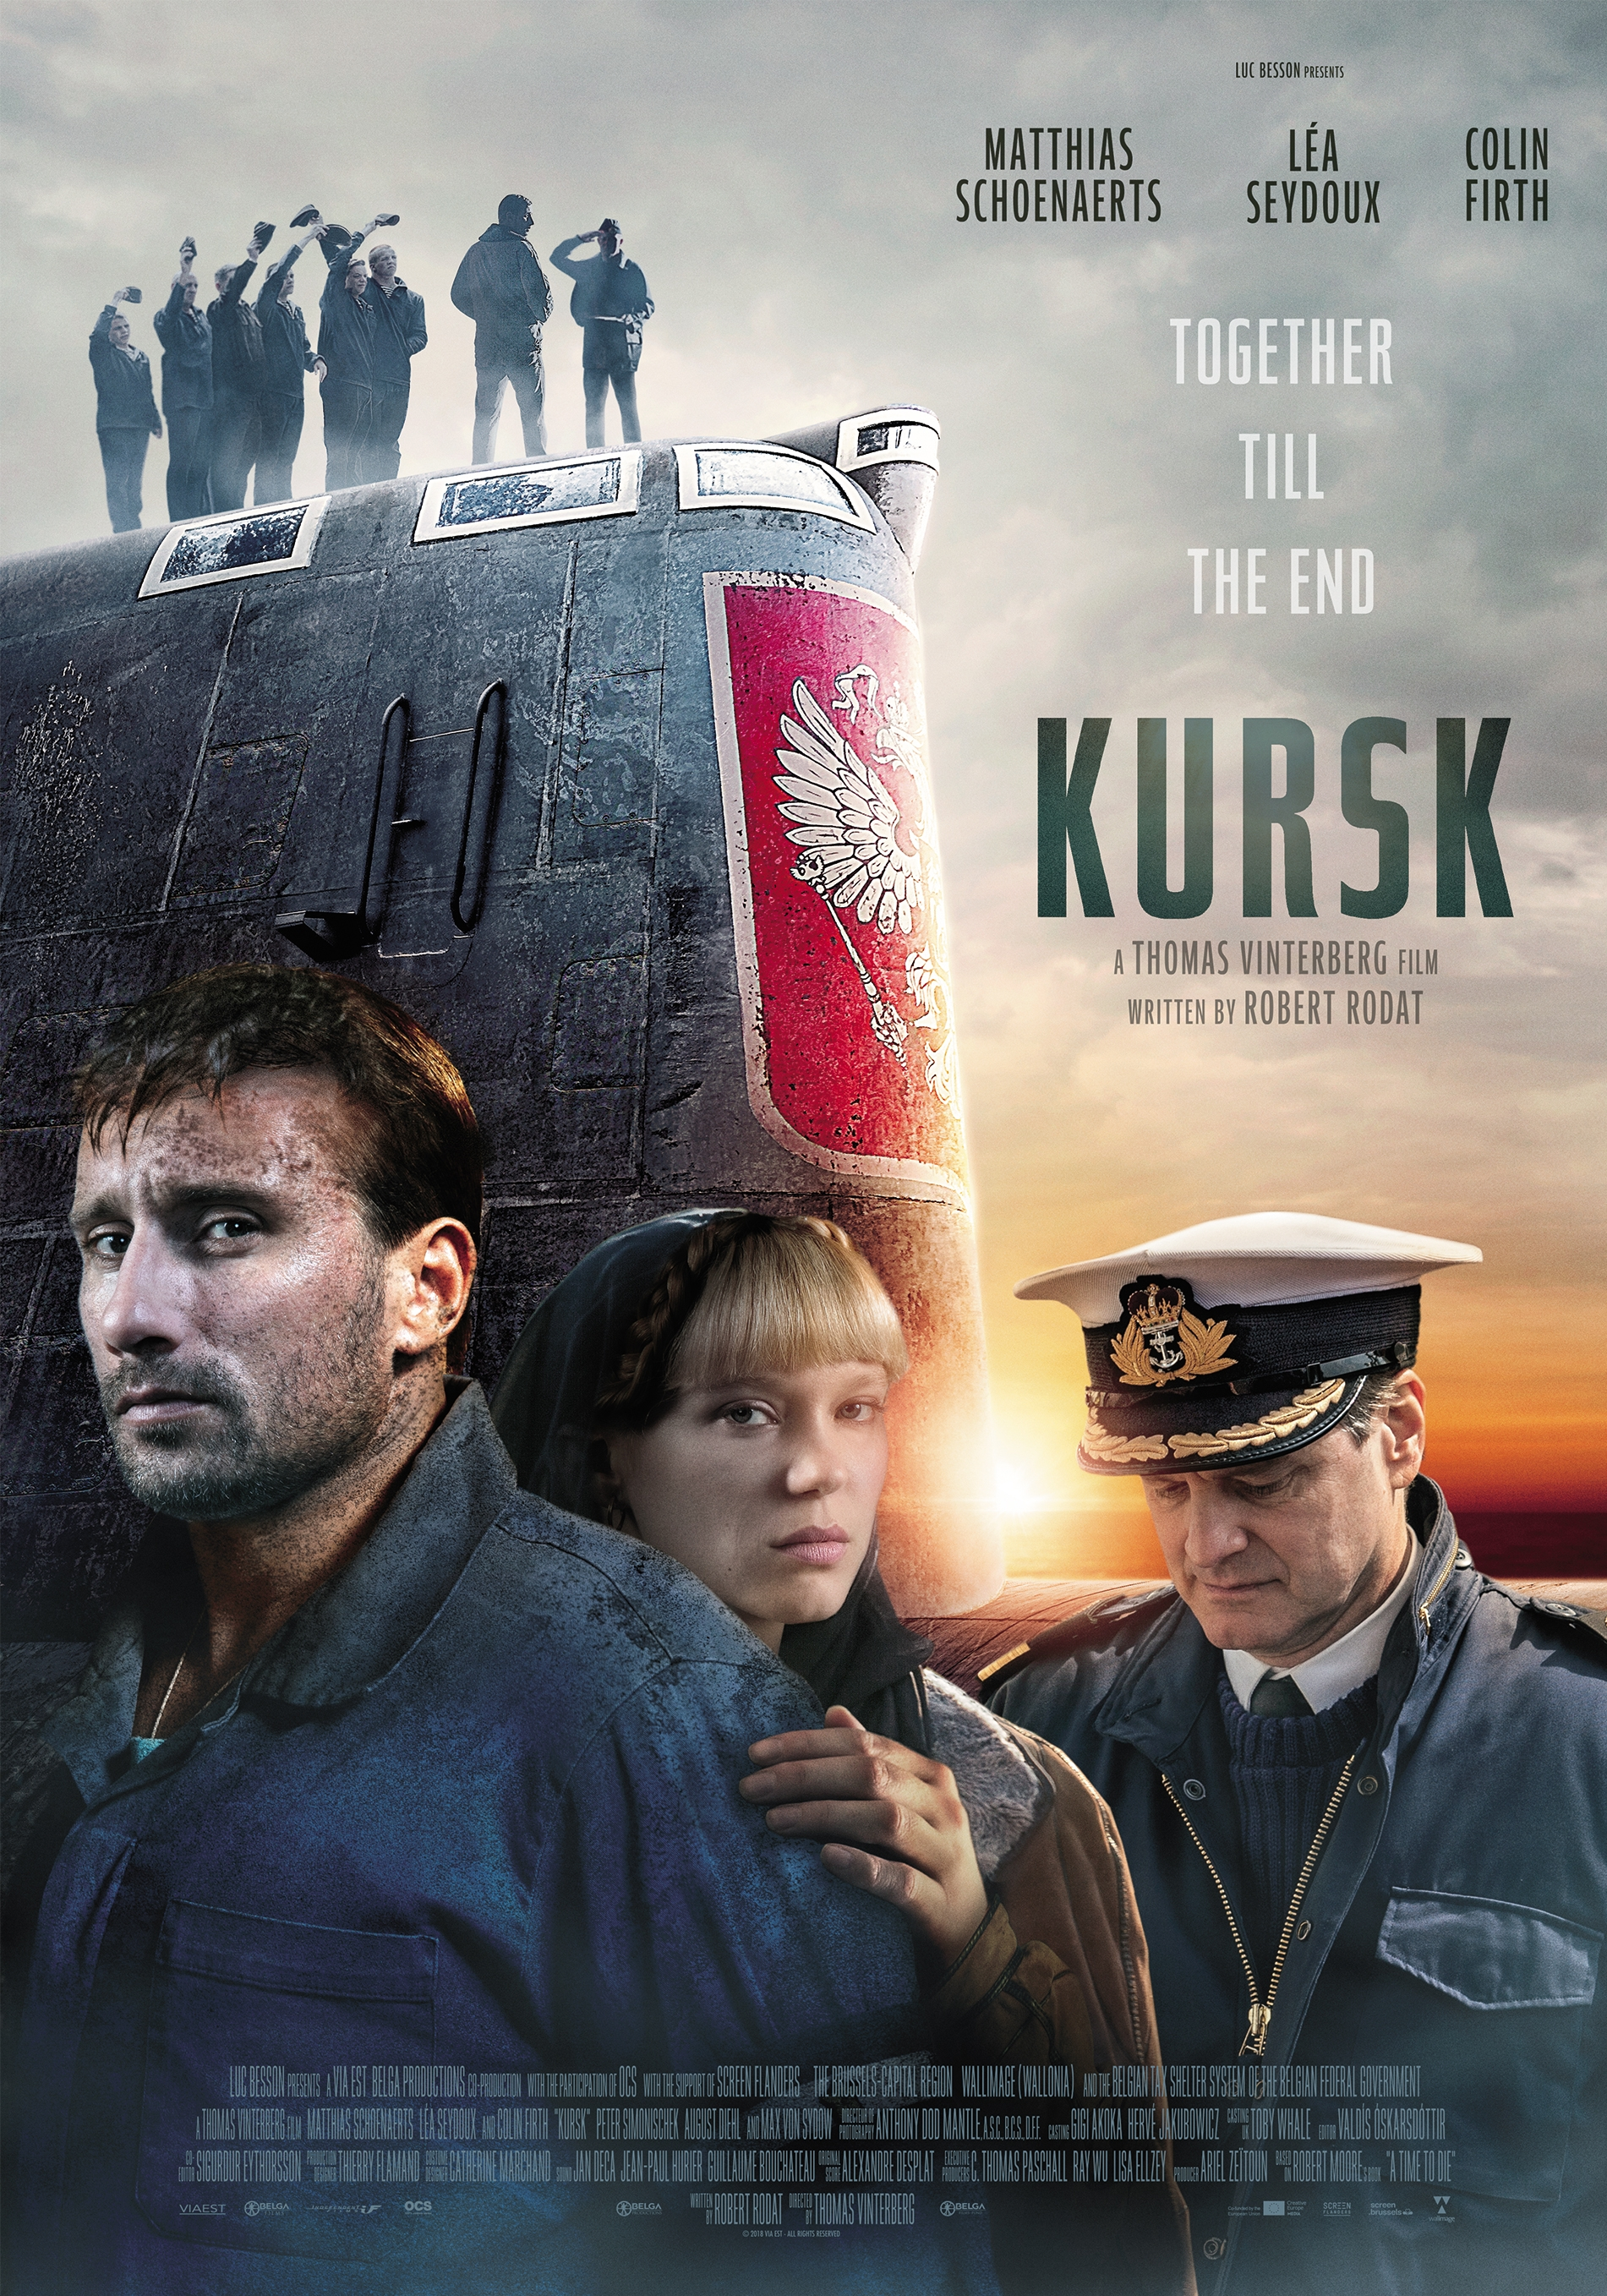 Kursk poster, © 2018 Independent Films